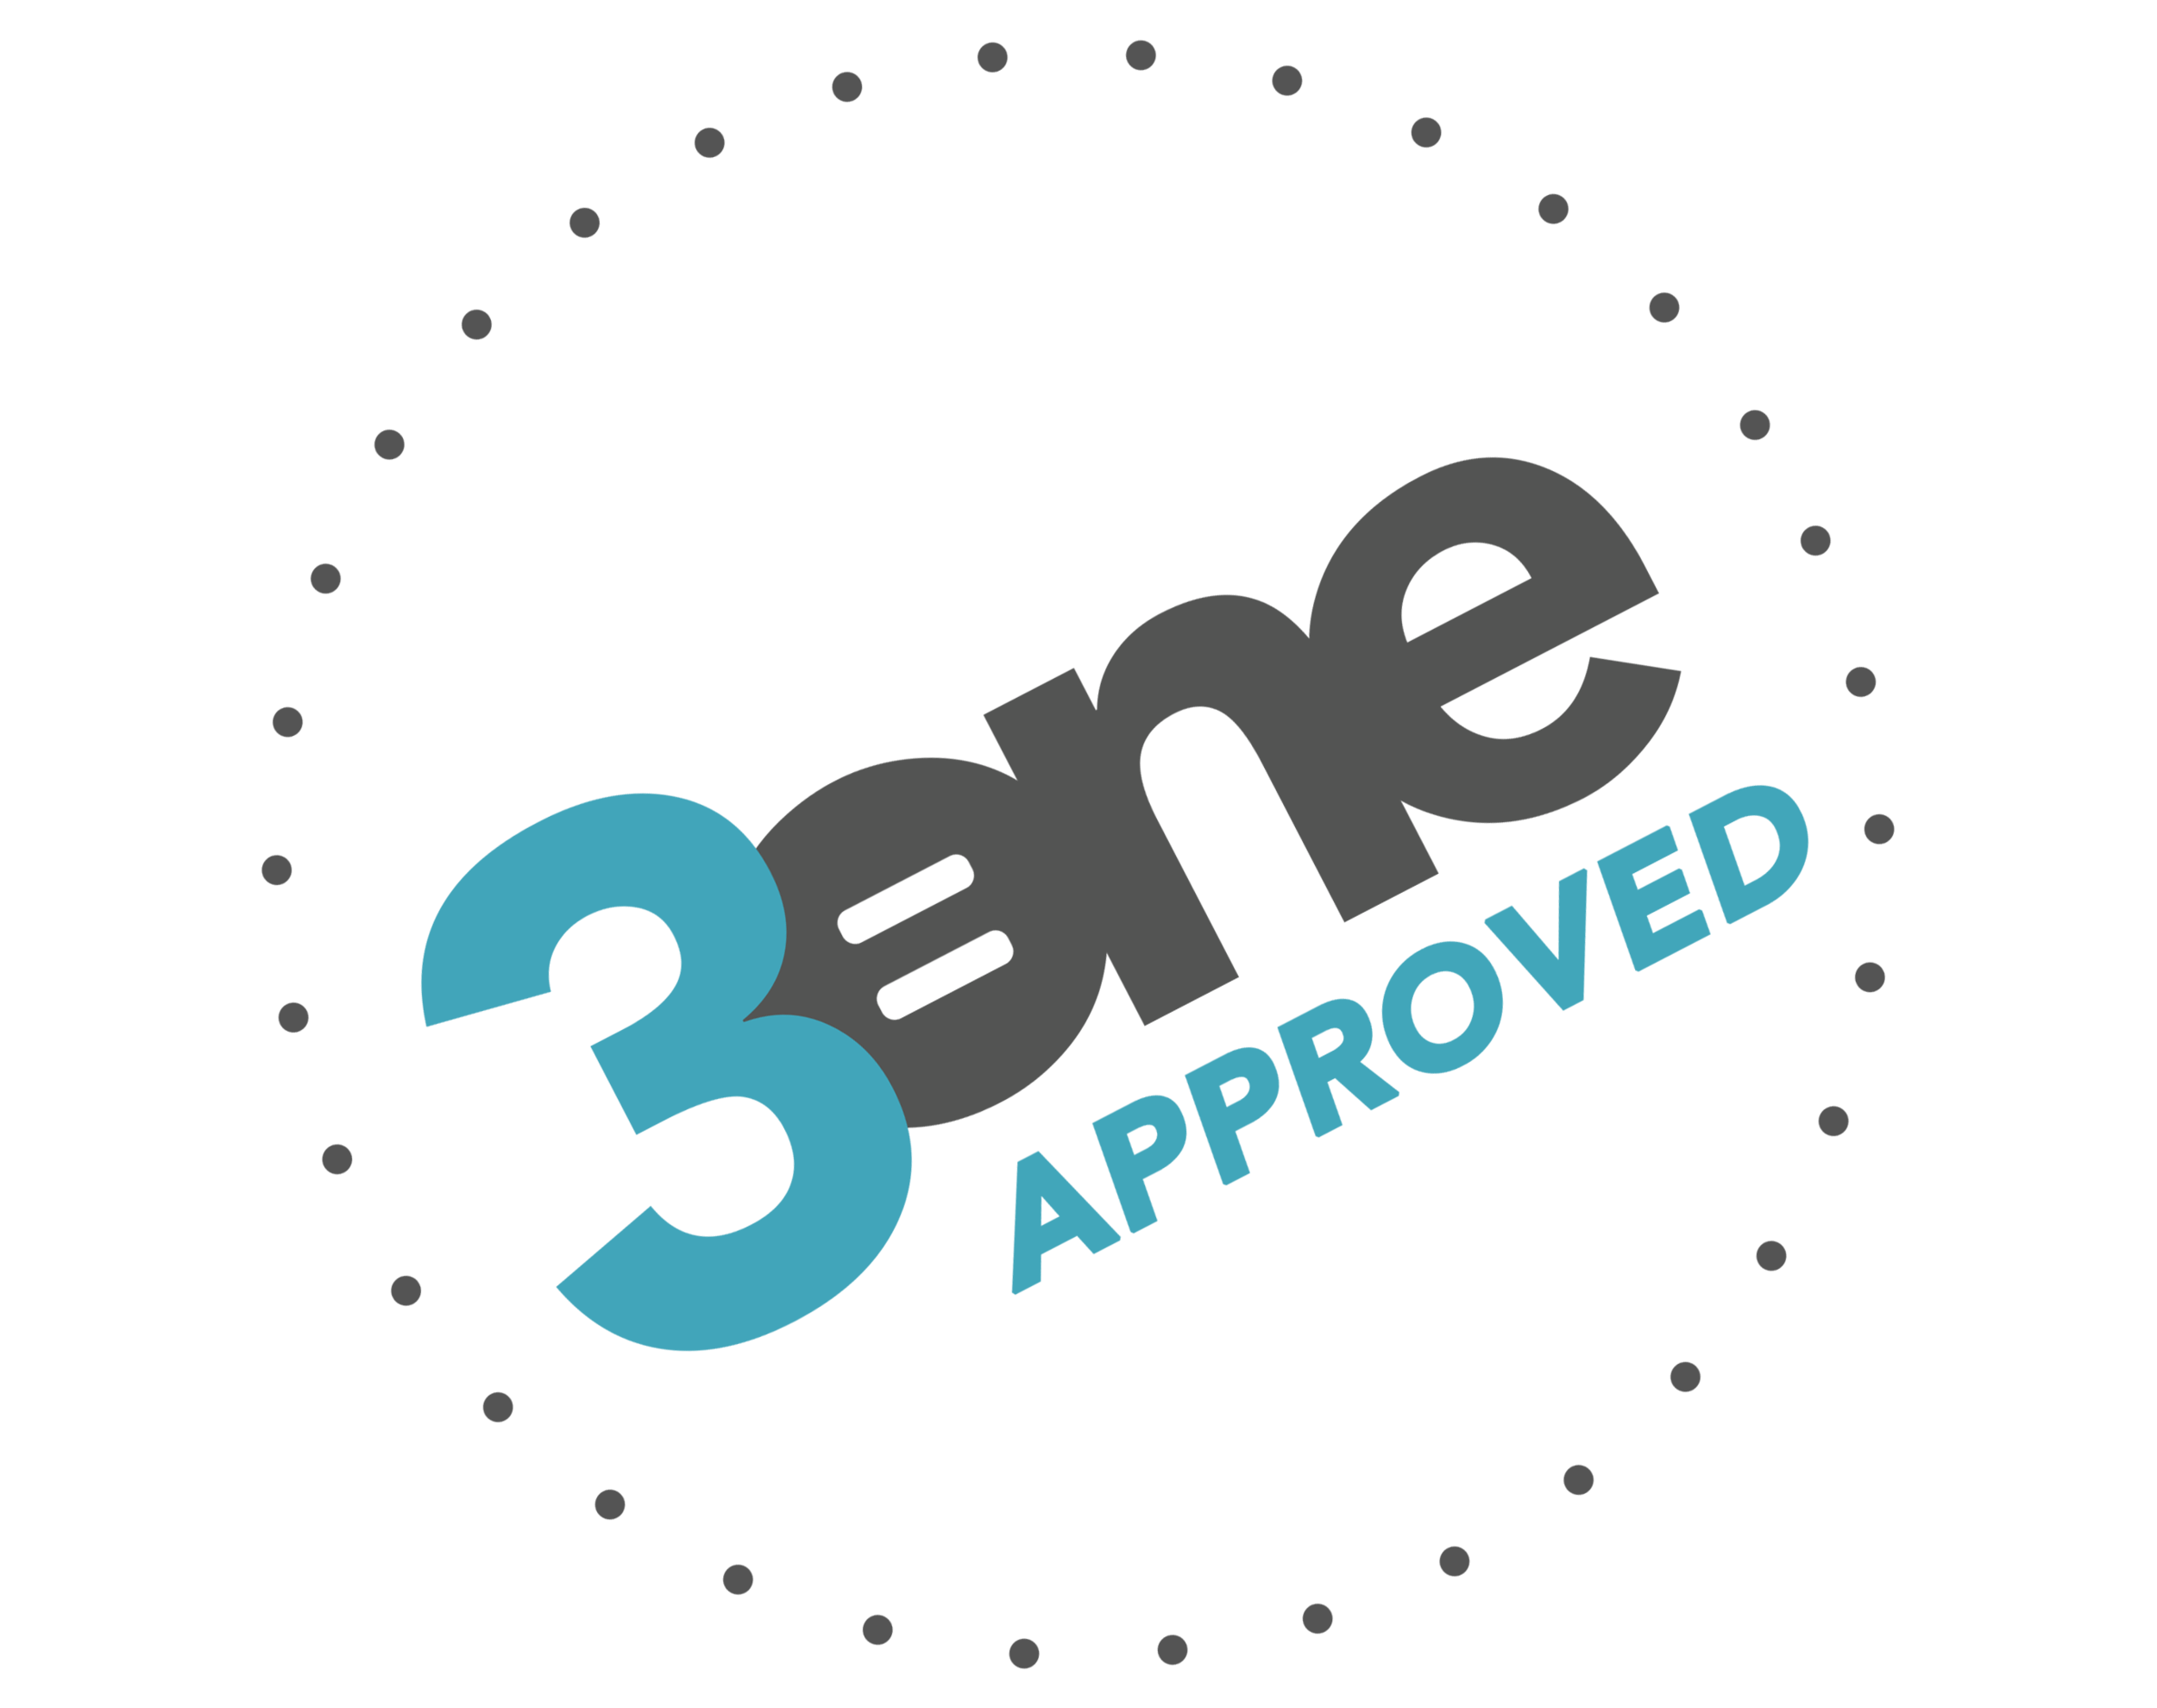 3equals1 approved logo.twisted.png